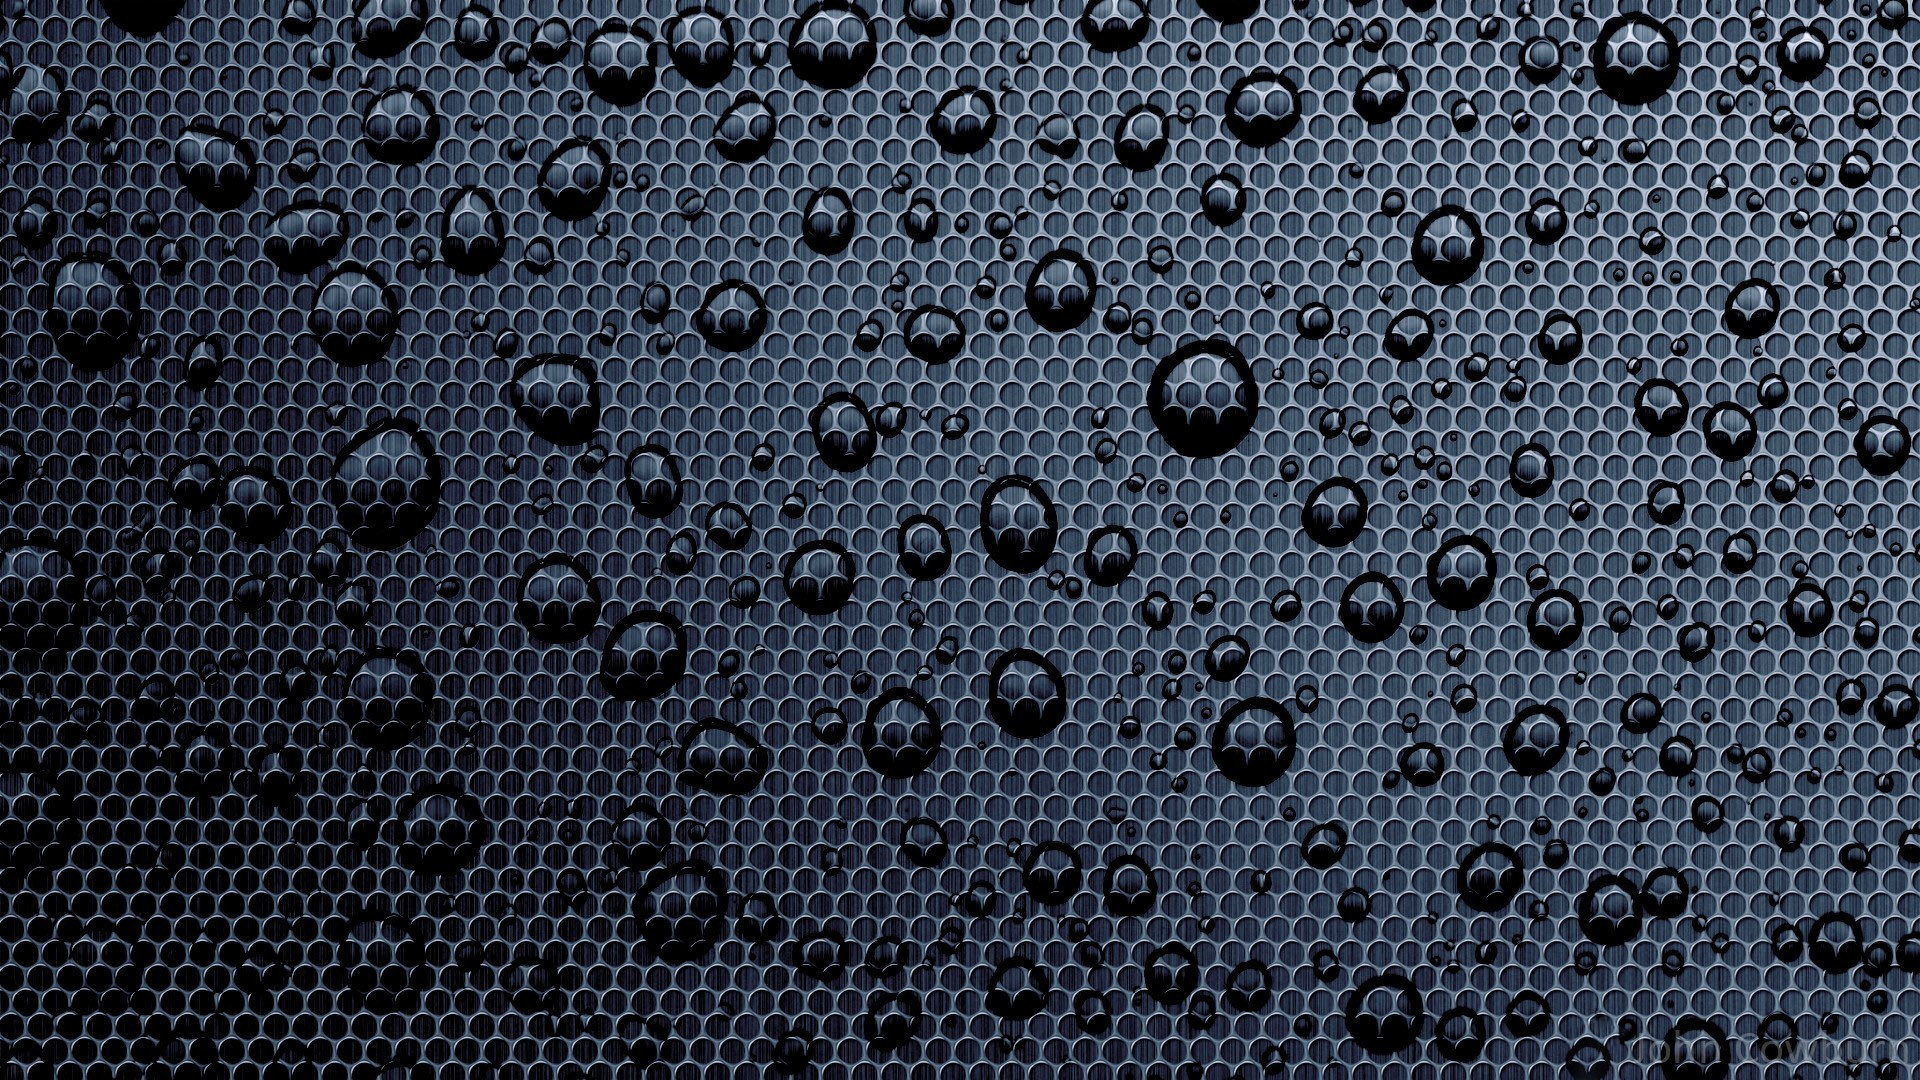 Res: 1920x1080, Honeycomb Wallpapers 21 - 1920 X 1080